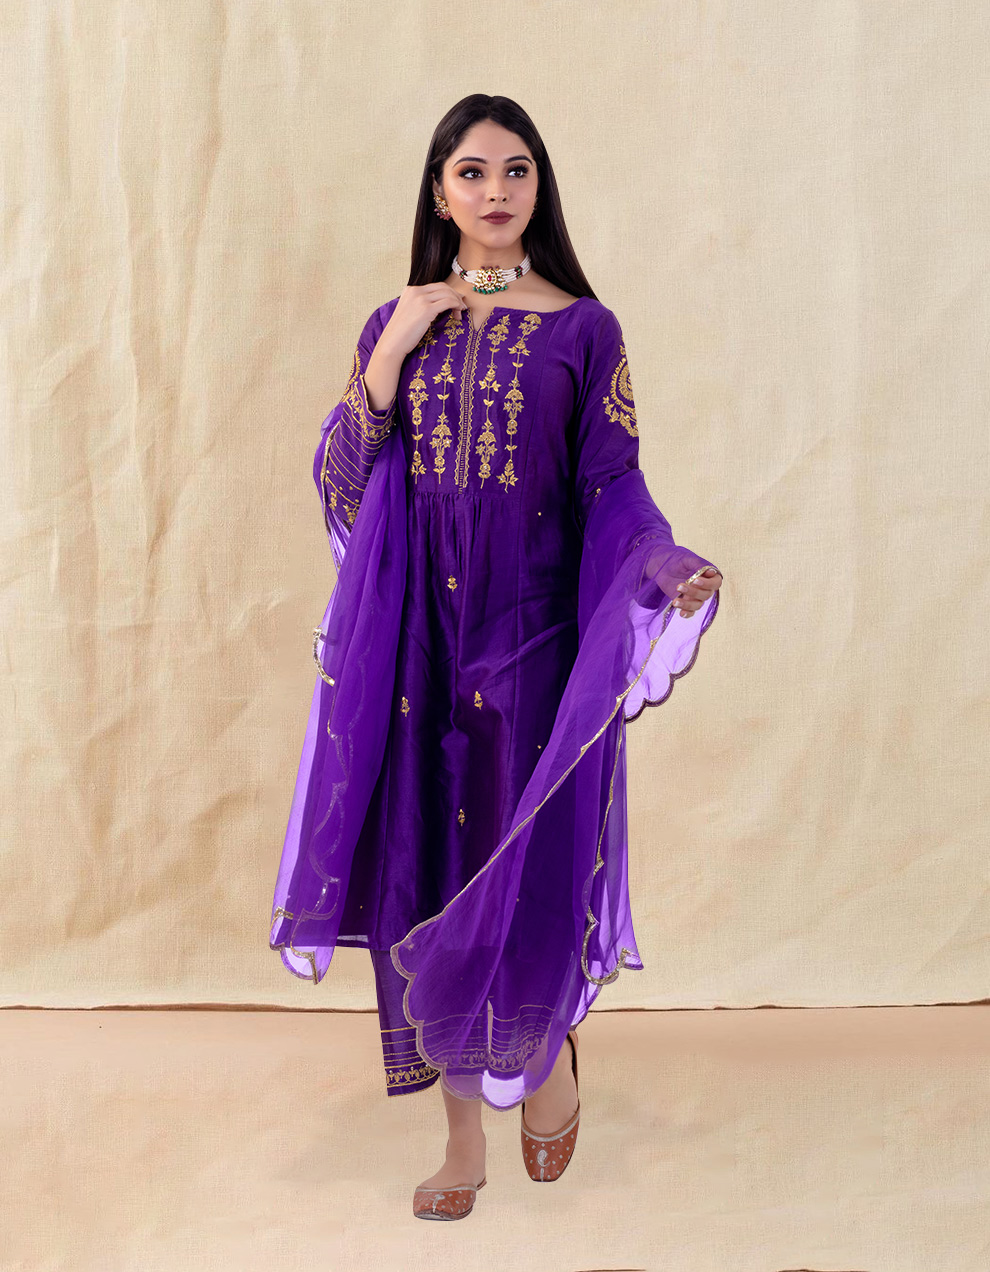 Purple hand embroidered chanderi dupatta for sale in India